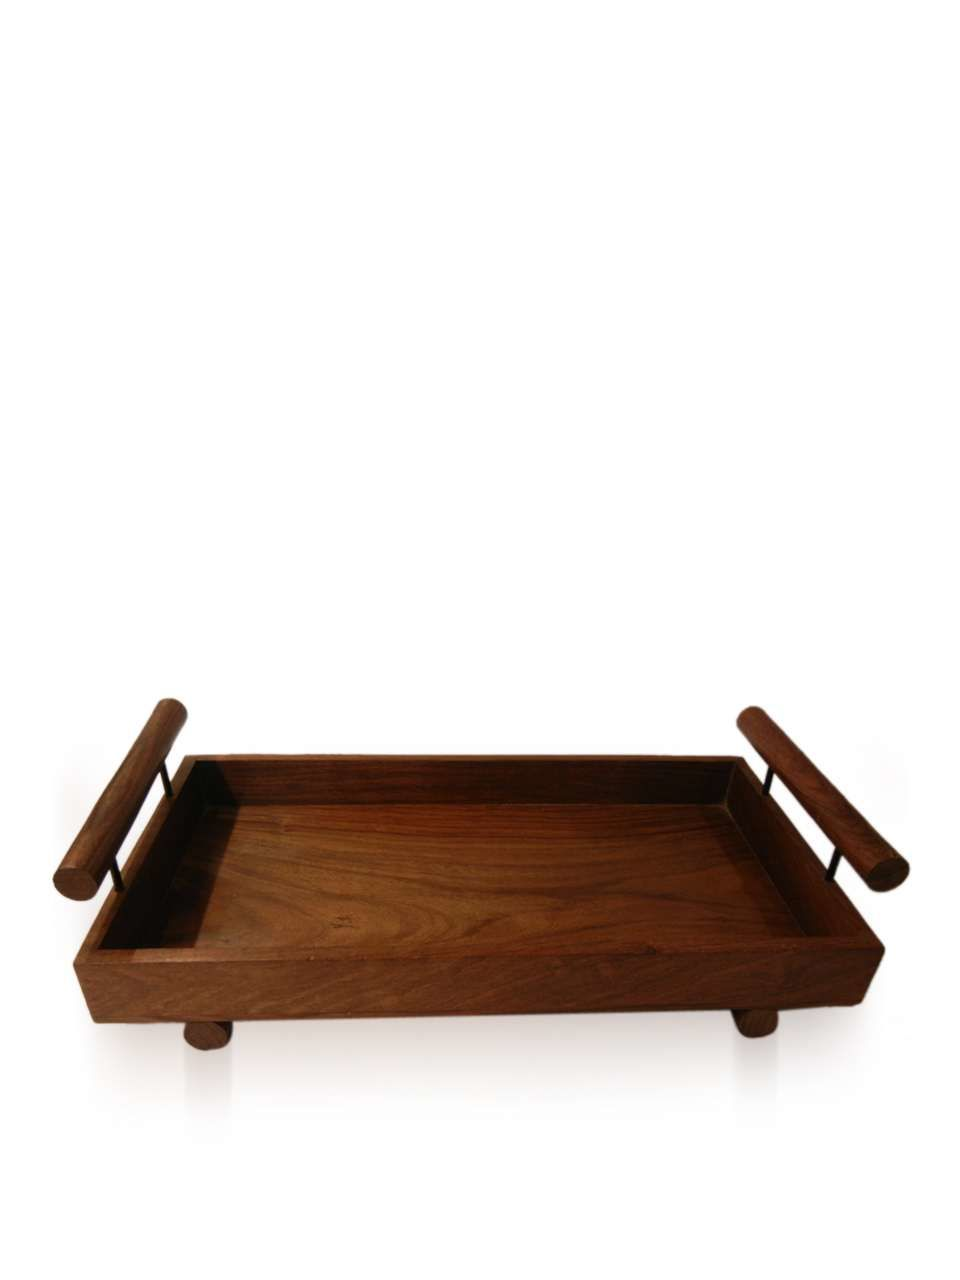 Customisable Wooden Snacks Serving Tray - cpwdbokw00017